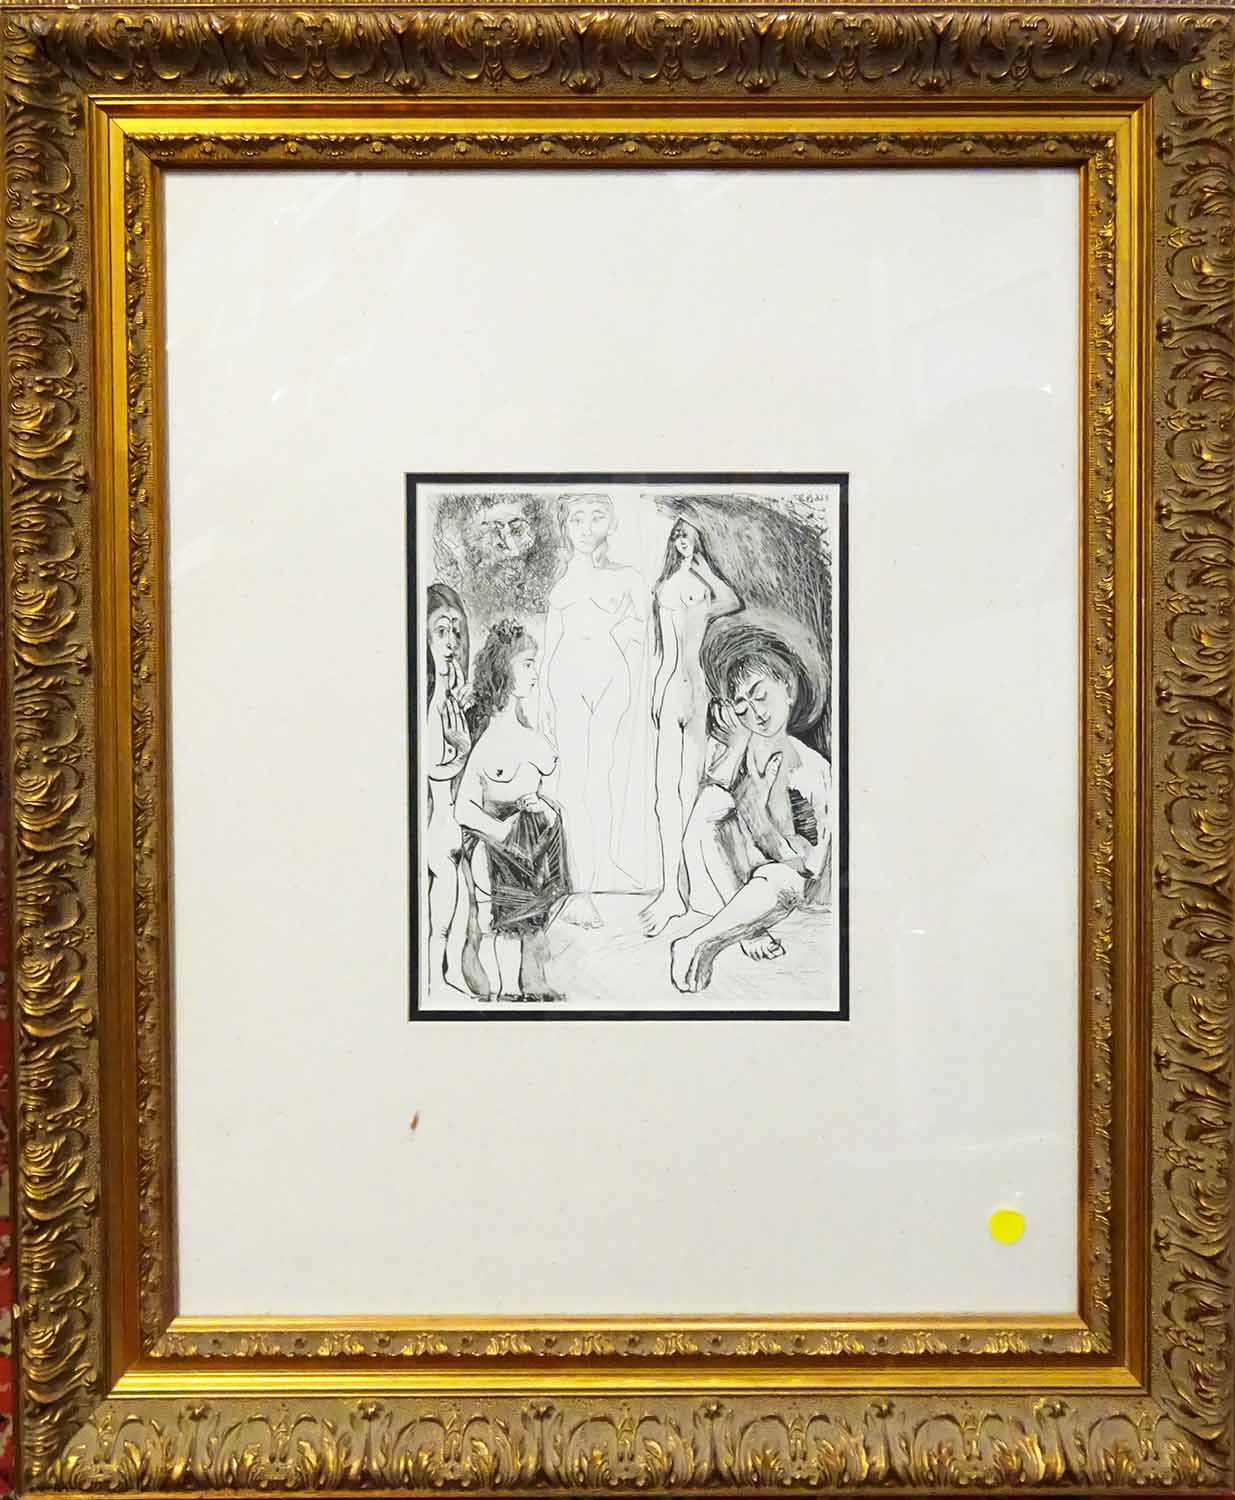 Lot 31 - After PABLO PICASSO, offset lithograph from the Picasso 347 volume, printed by Conzett and Huber,